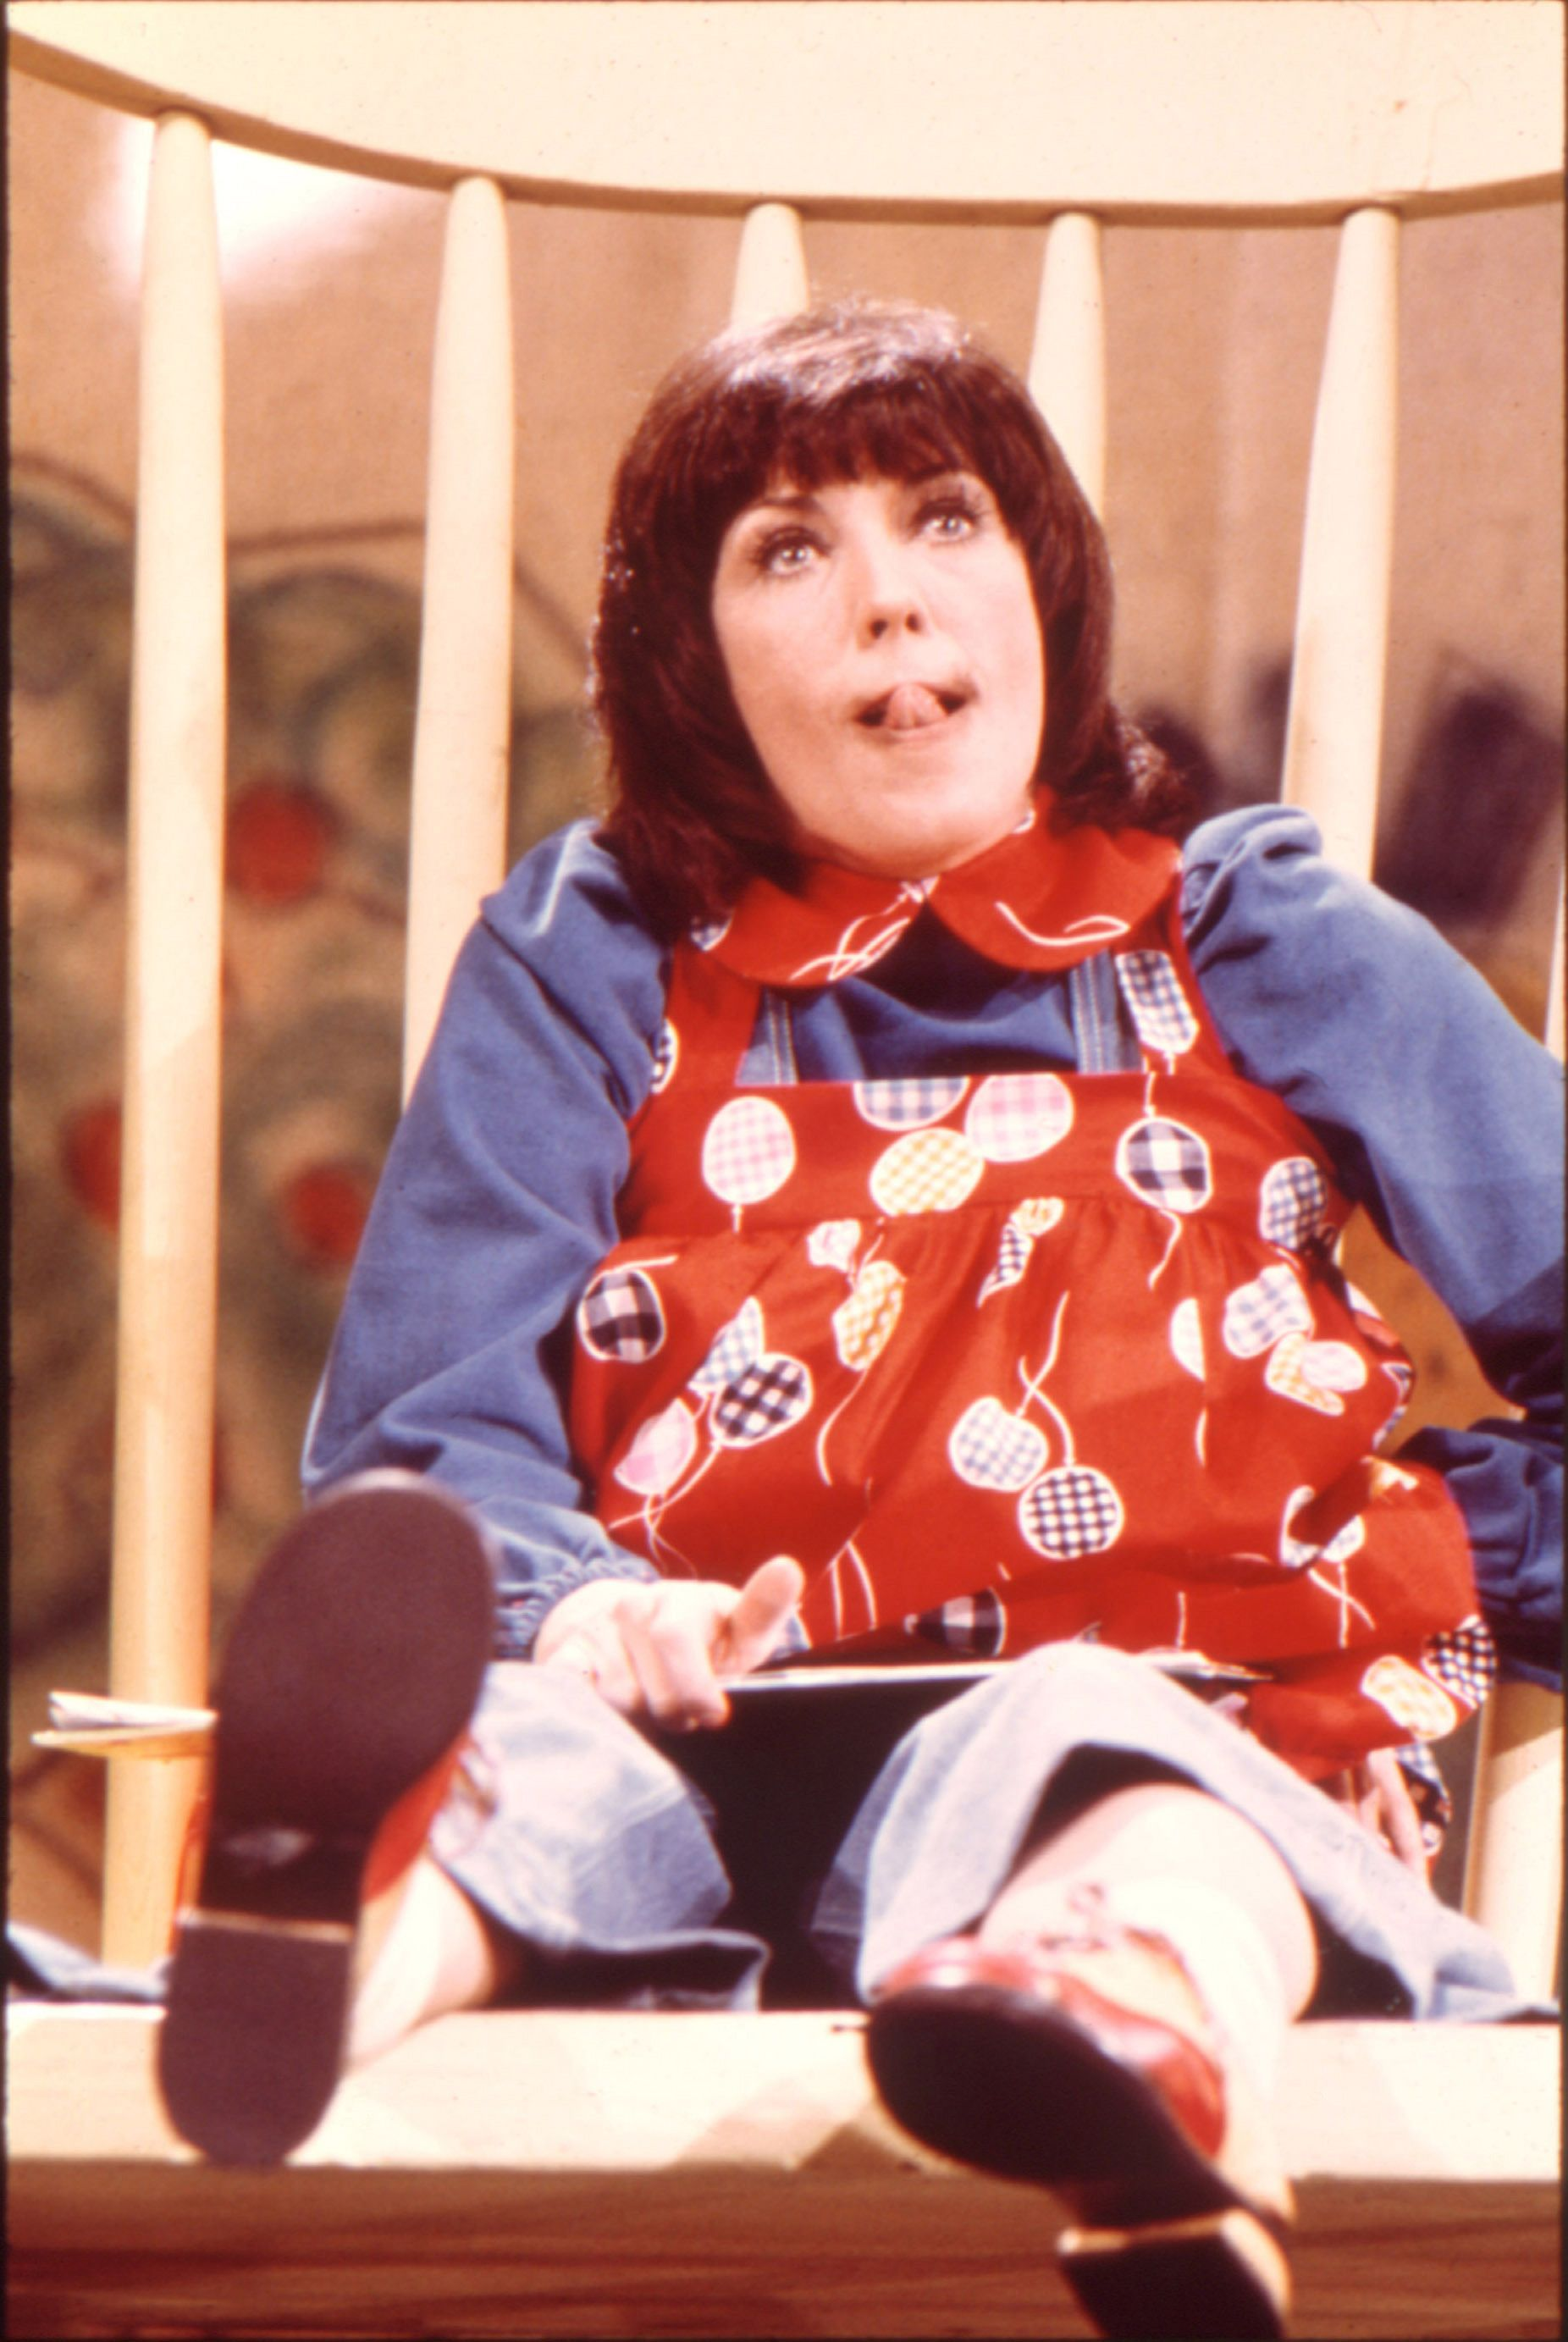 little girl rocking chair ergonomic pictures lily tomlin as edith ann they played it so well